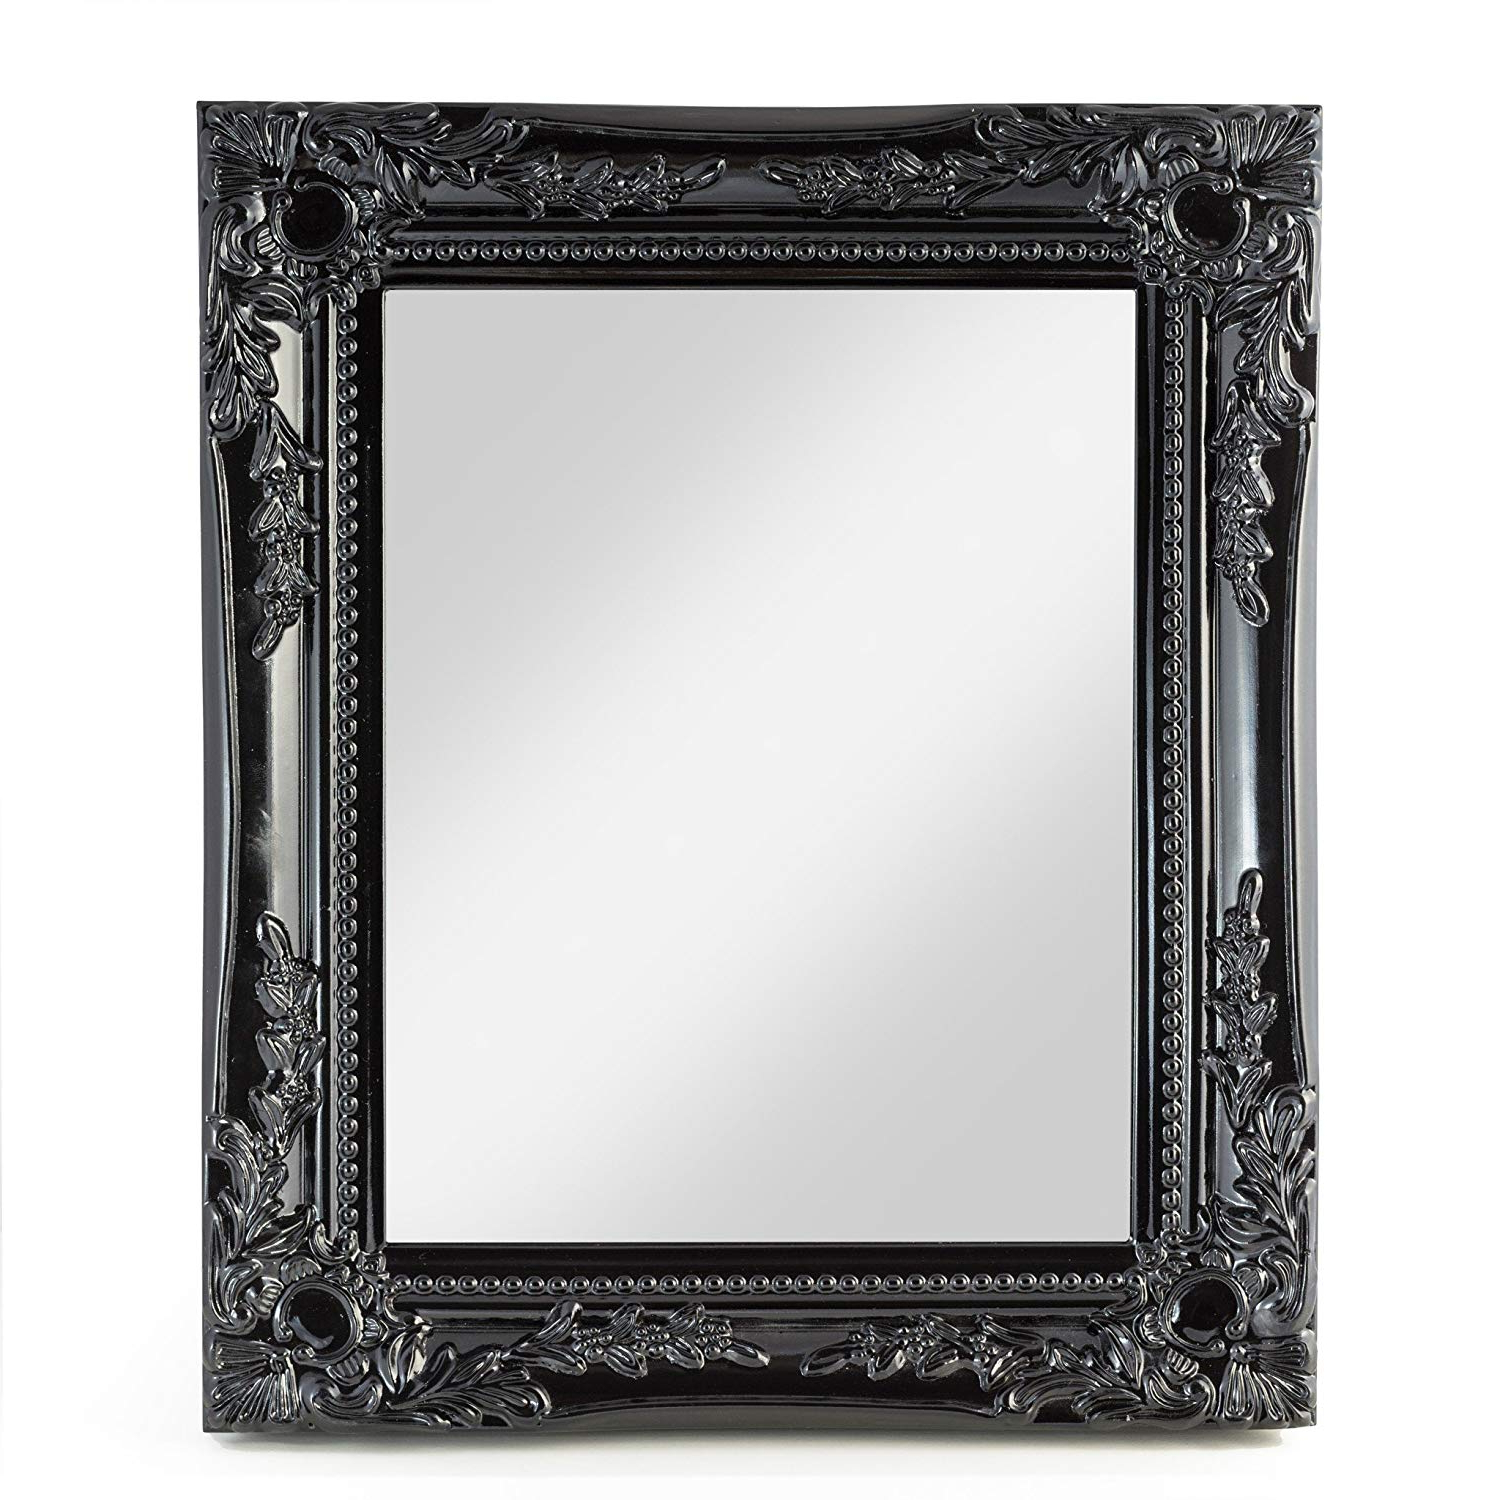 Widely Used Elbmoebel Wall Mirror Shabby Chic Antique Style Ornate Black Silver White – Large 33x27x3 Cm (black) For Shabby Chic Large Wall Mirrors (View 12 of 20)